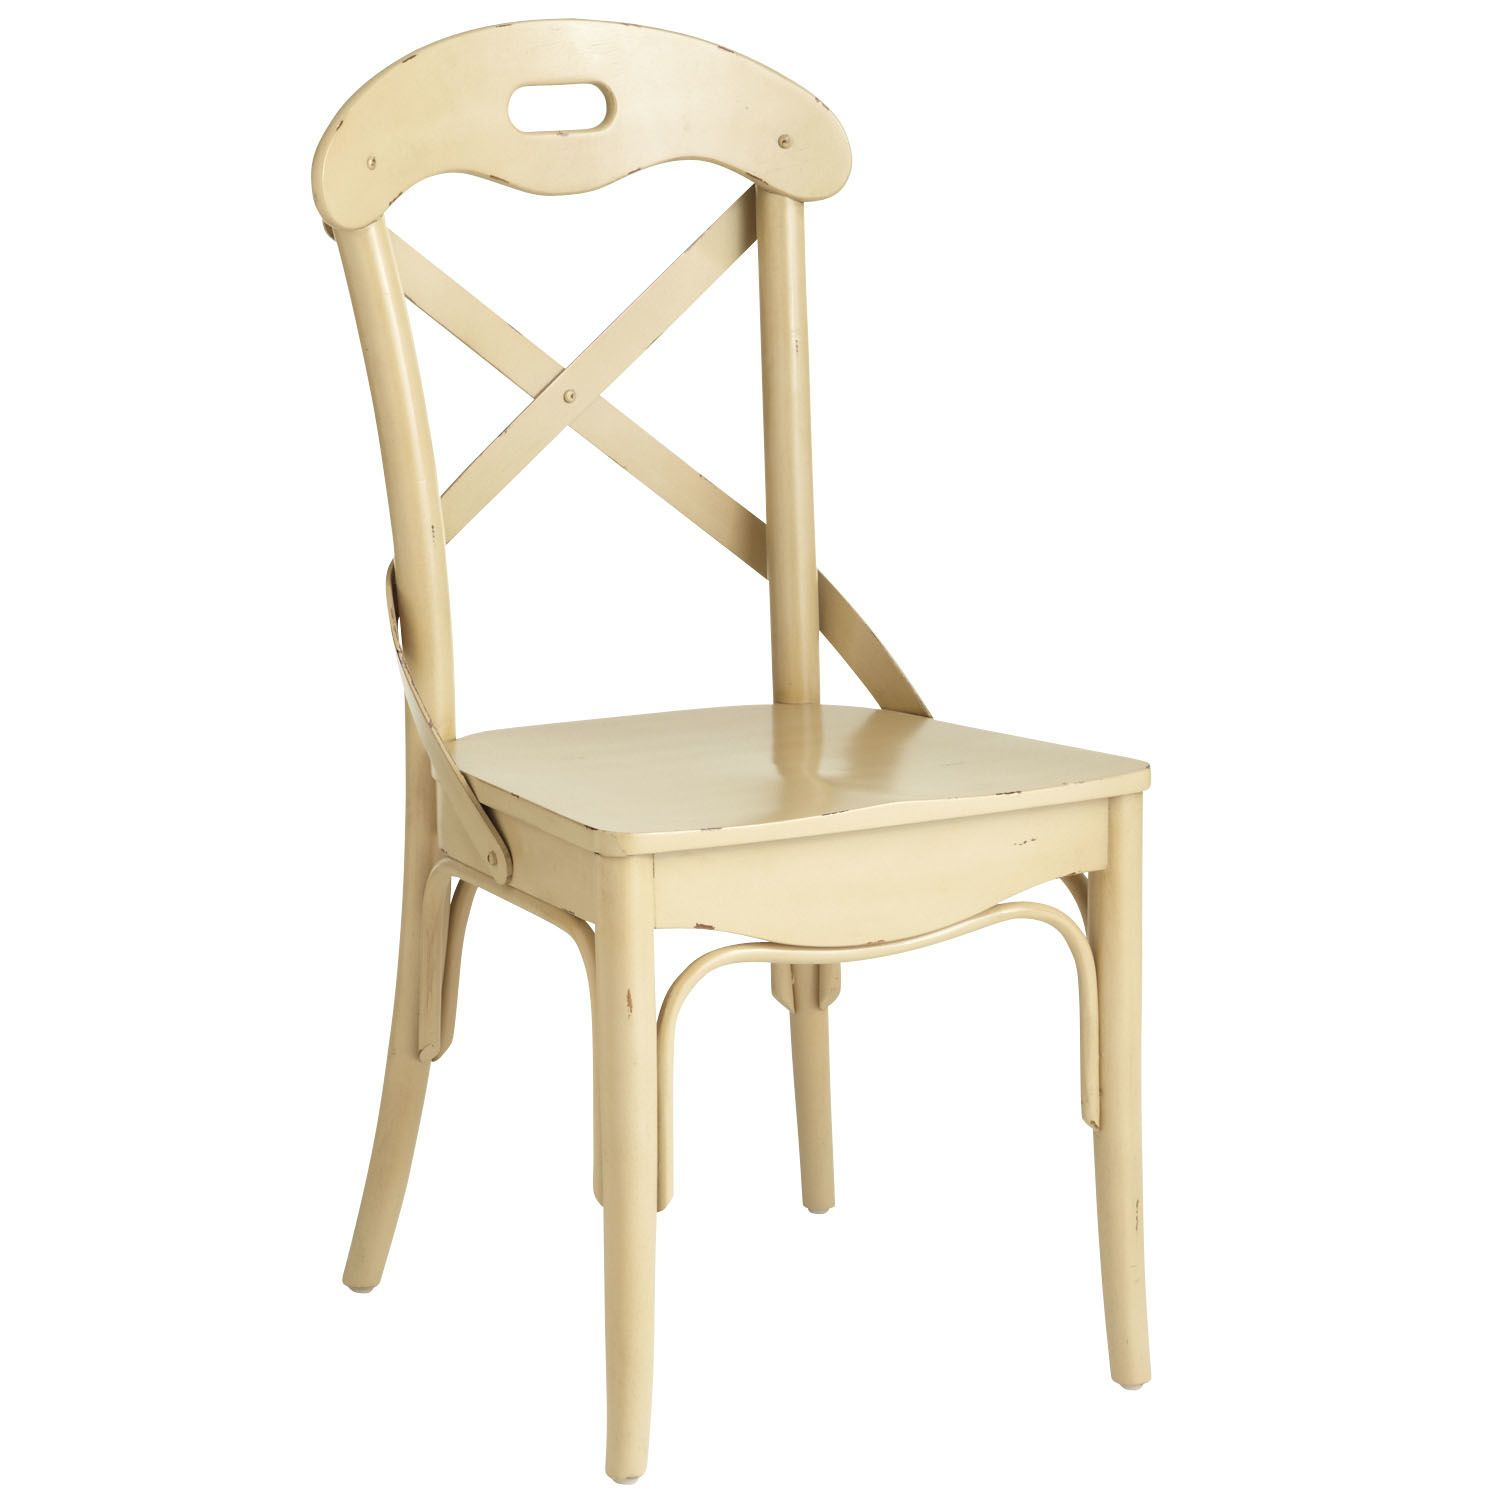 Curved Back Dining Room Chairs Stunning Curved Back Dining Chair  Antique Ivory  Pier 1 Imports  23 Inspiration